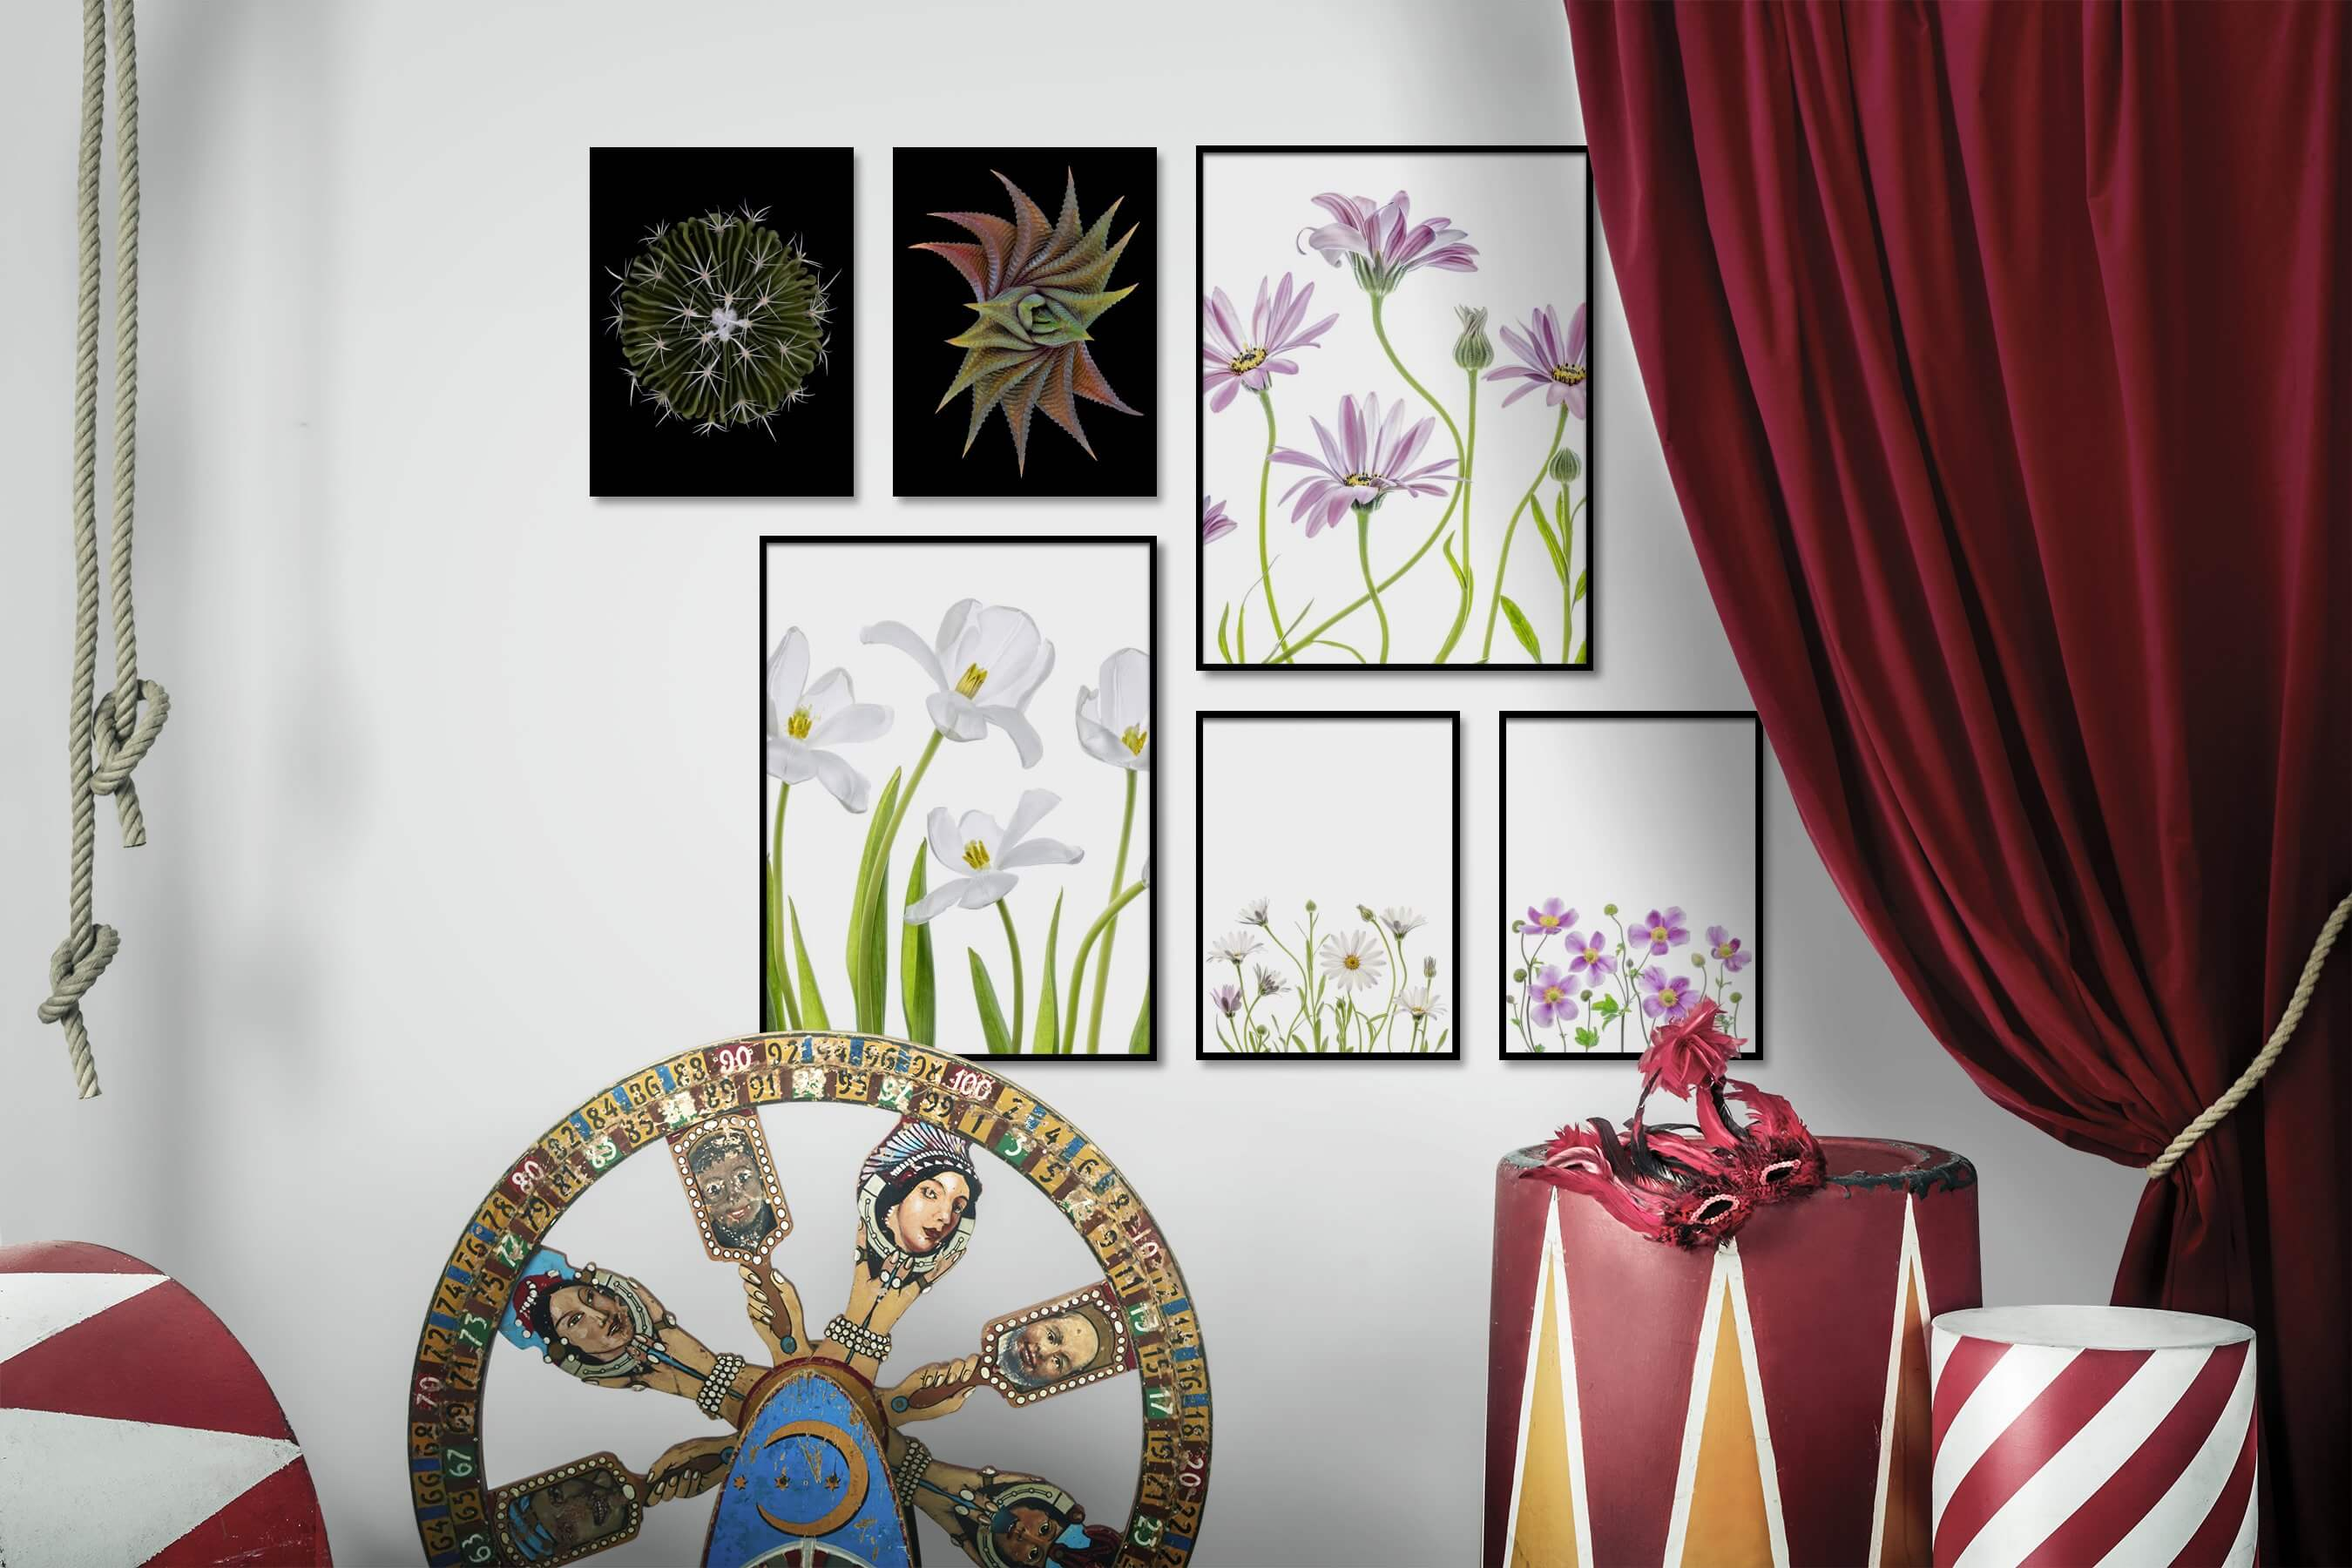 Gallery wall idea with six framed pictures arranged on a wall depicting Dark Tones, For the Minimalist, Flowers & Plants, Bright Tones, and For the Moderate